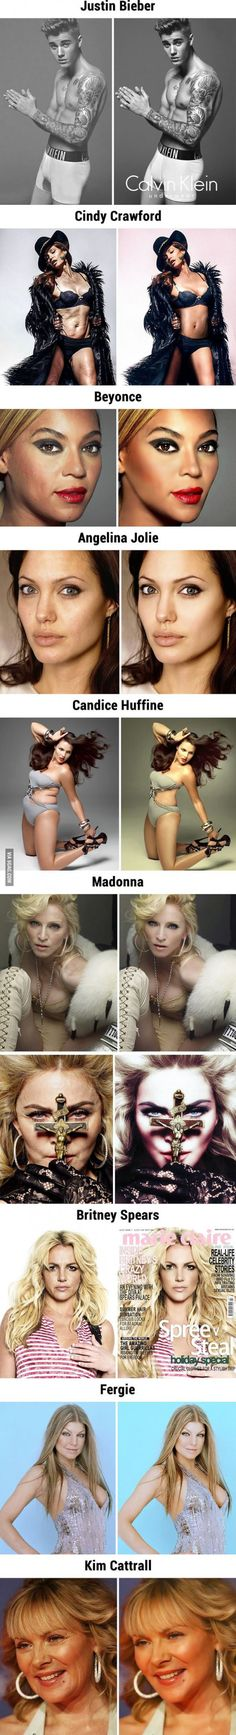 10 Celebrities Before And After Photoshop